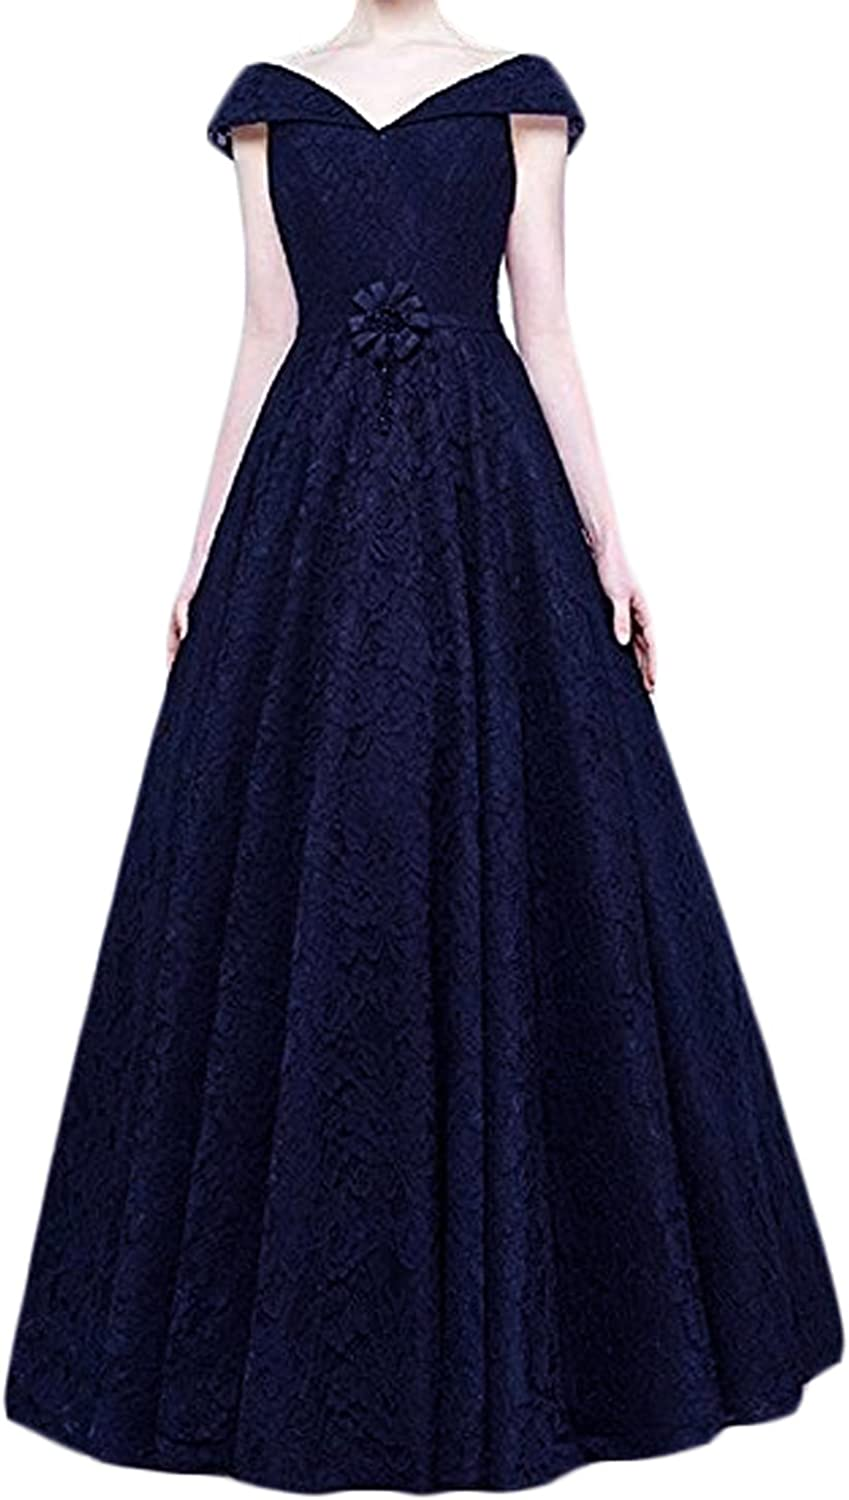 CIRCLEWLD Swing Prom Dresses Cap Sleeve Lace Long Formal Plus Size Evening Gown